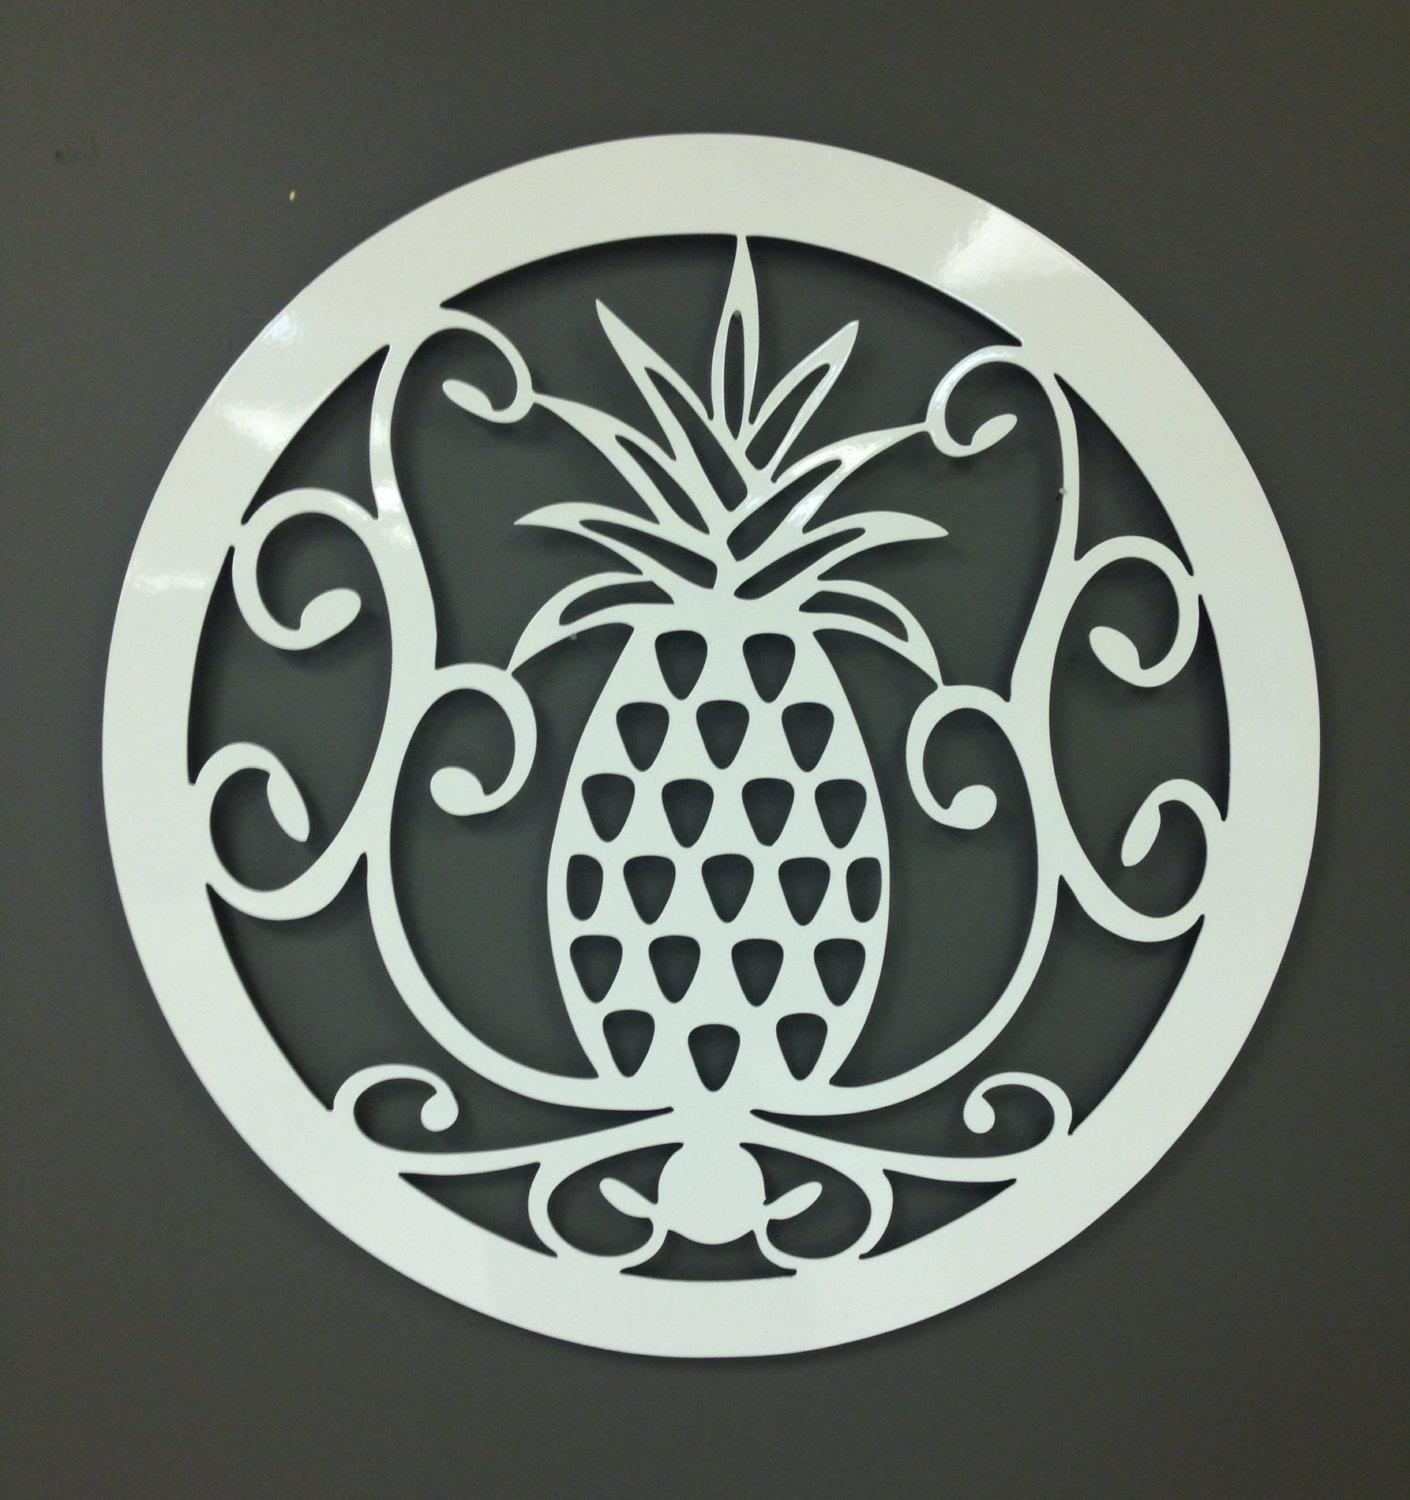 Metal Wall Art Pineapple Welcome Symbol 24 Regarding Pineapple Metal Wall Art (Image 11 of 20)